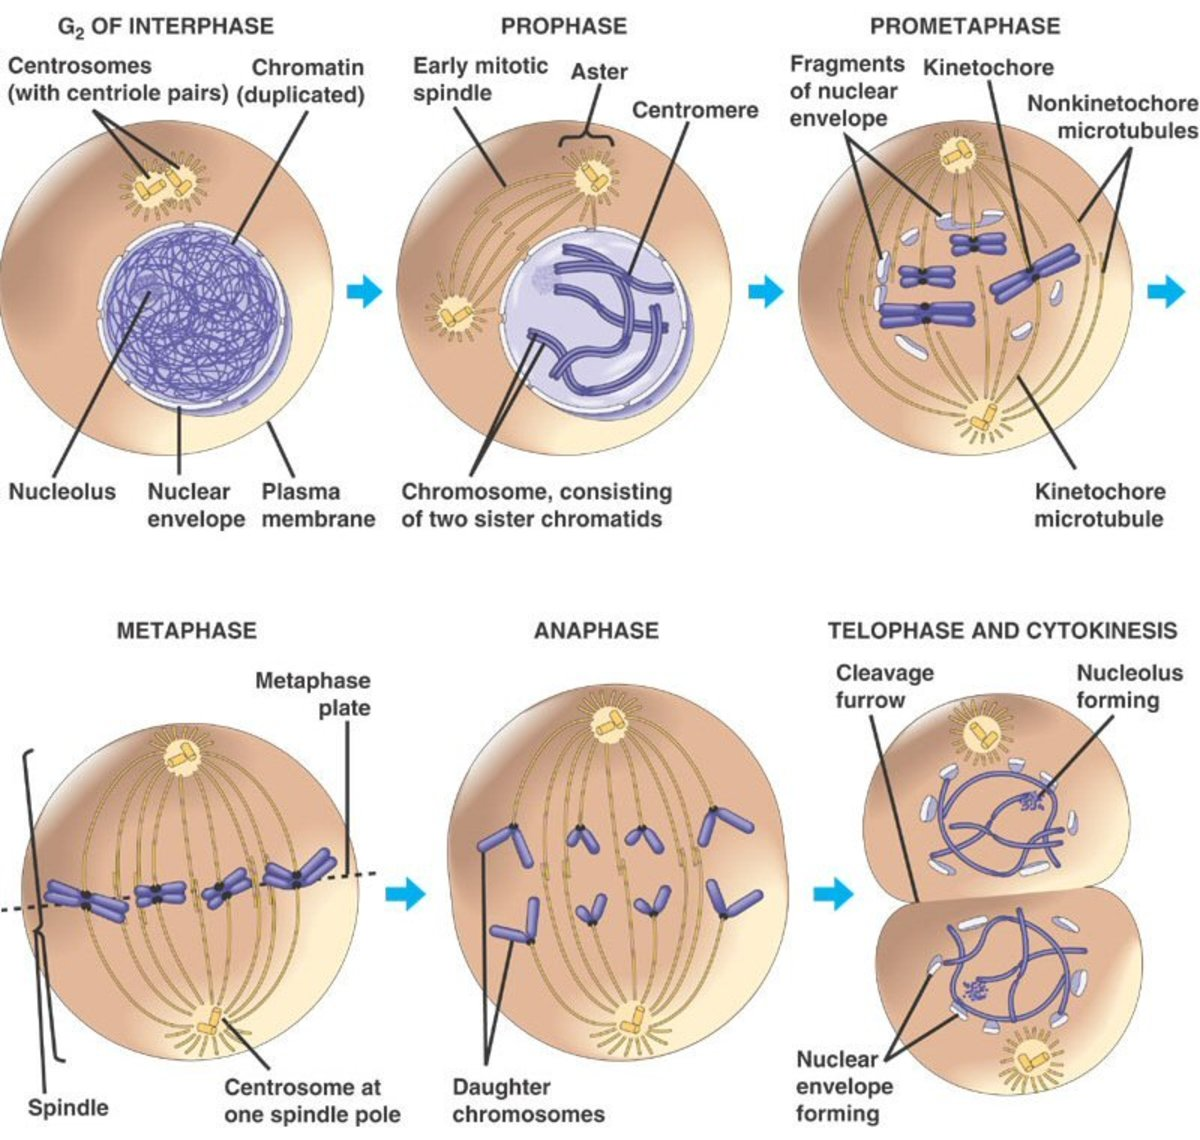 Stages of the Cell Cycle - Mitosis (Metaphase, Anaphase and Telophase)